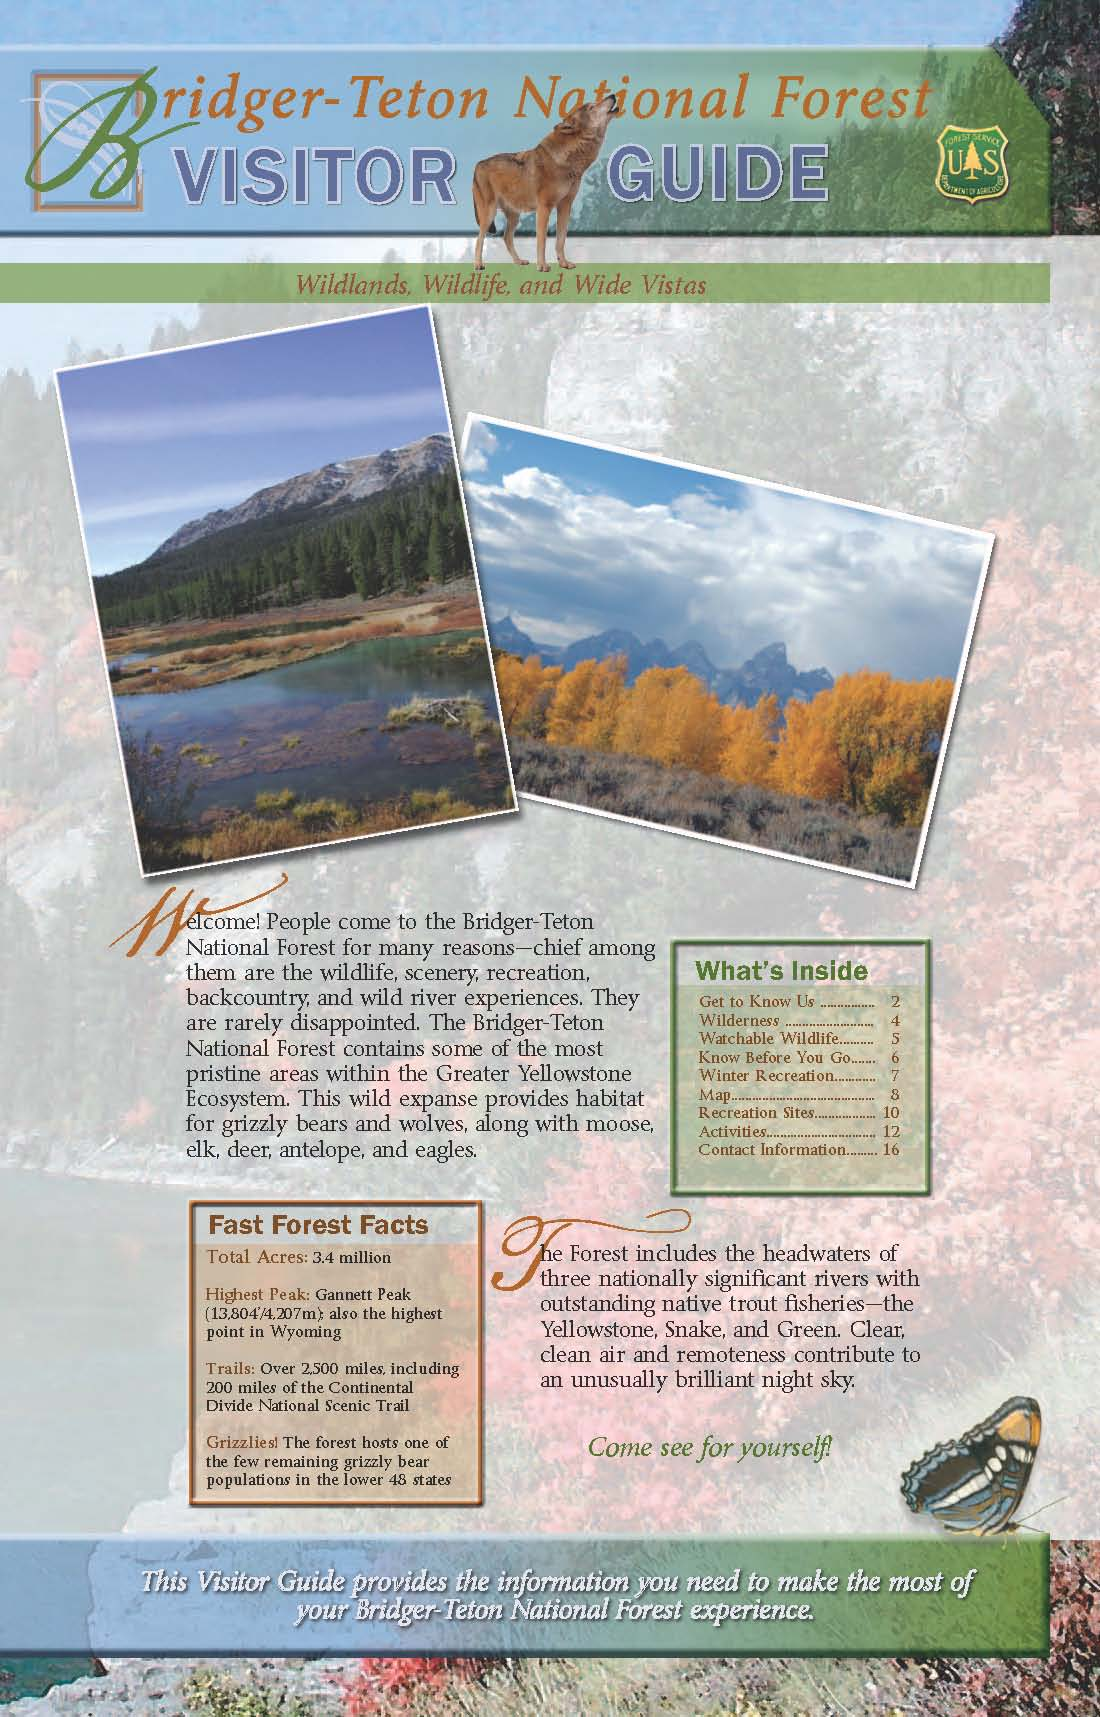 Link to Bridger-Teton NF Visitor Guide